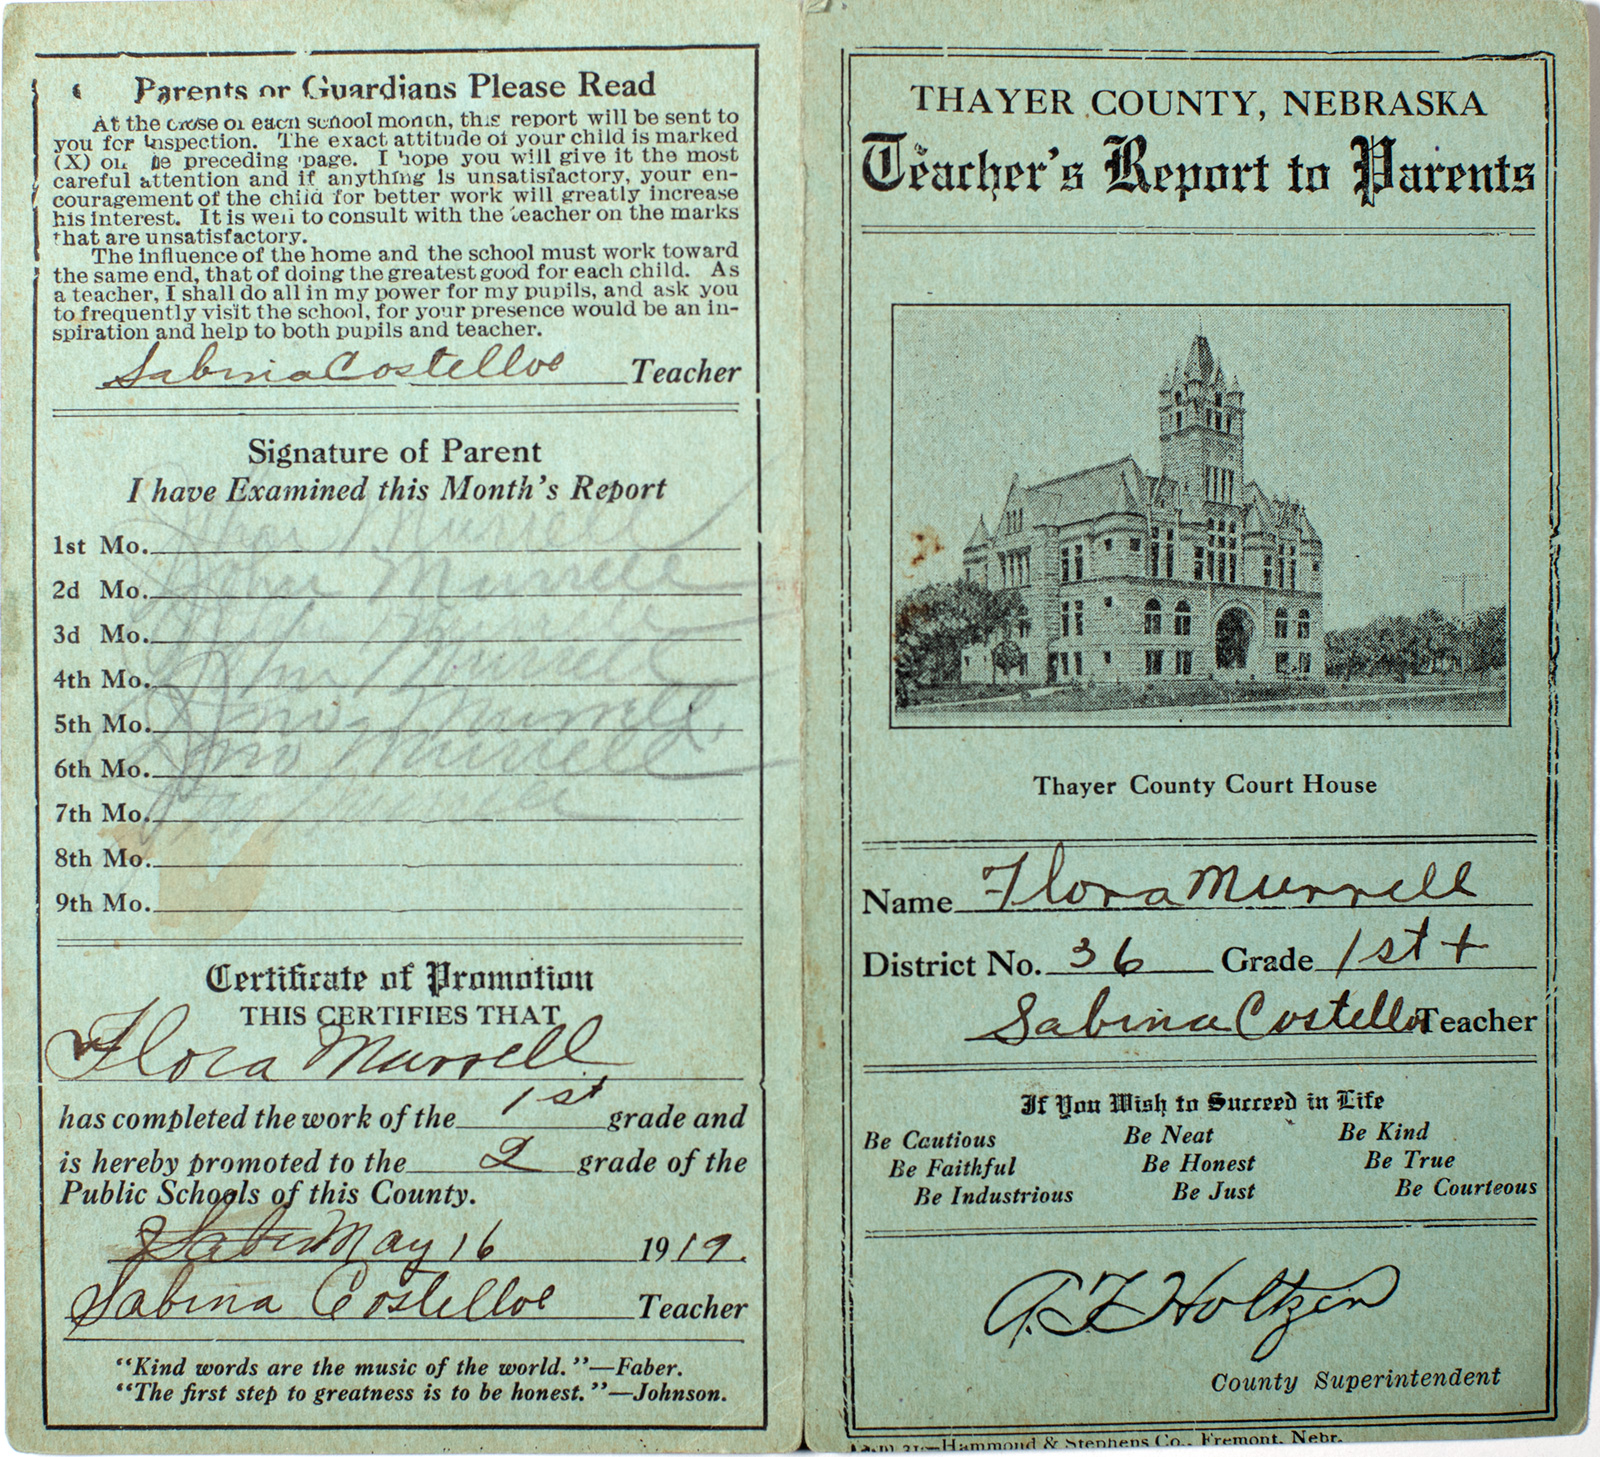 1917 Report Card from Thayer County Nebraska Image